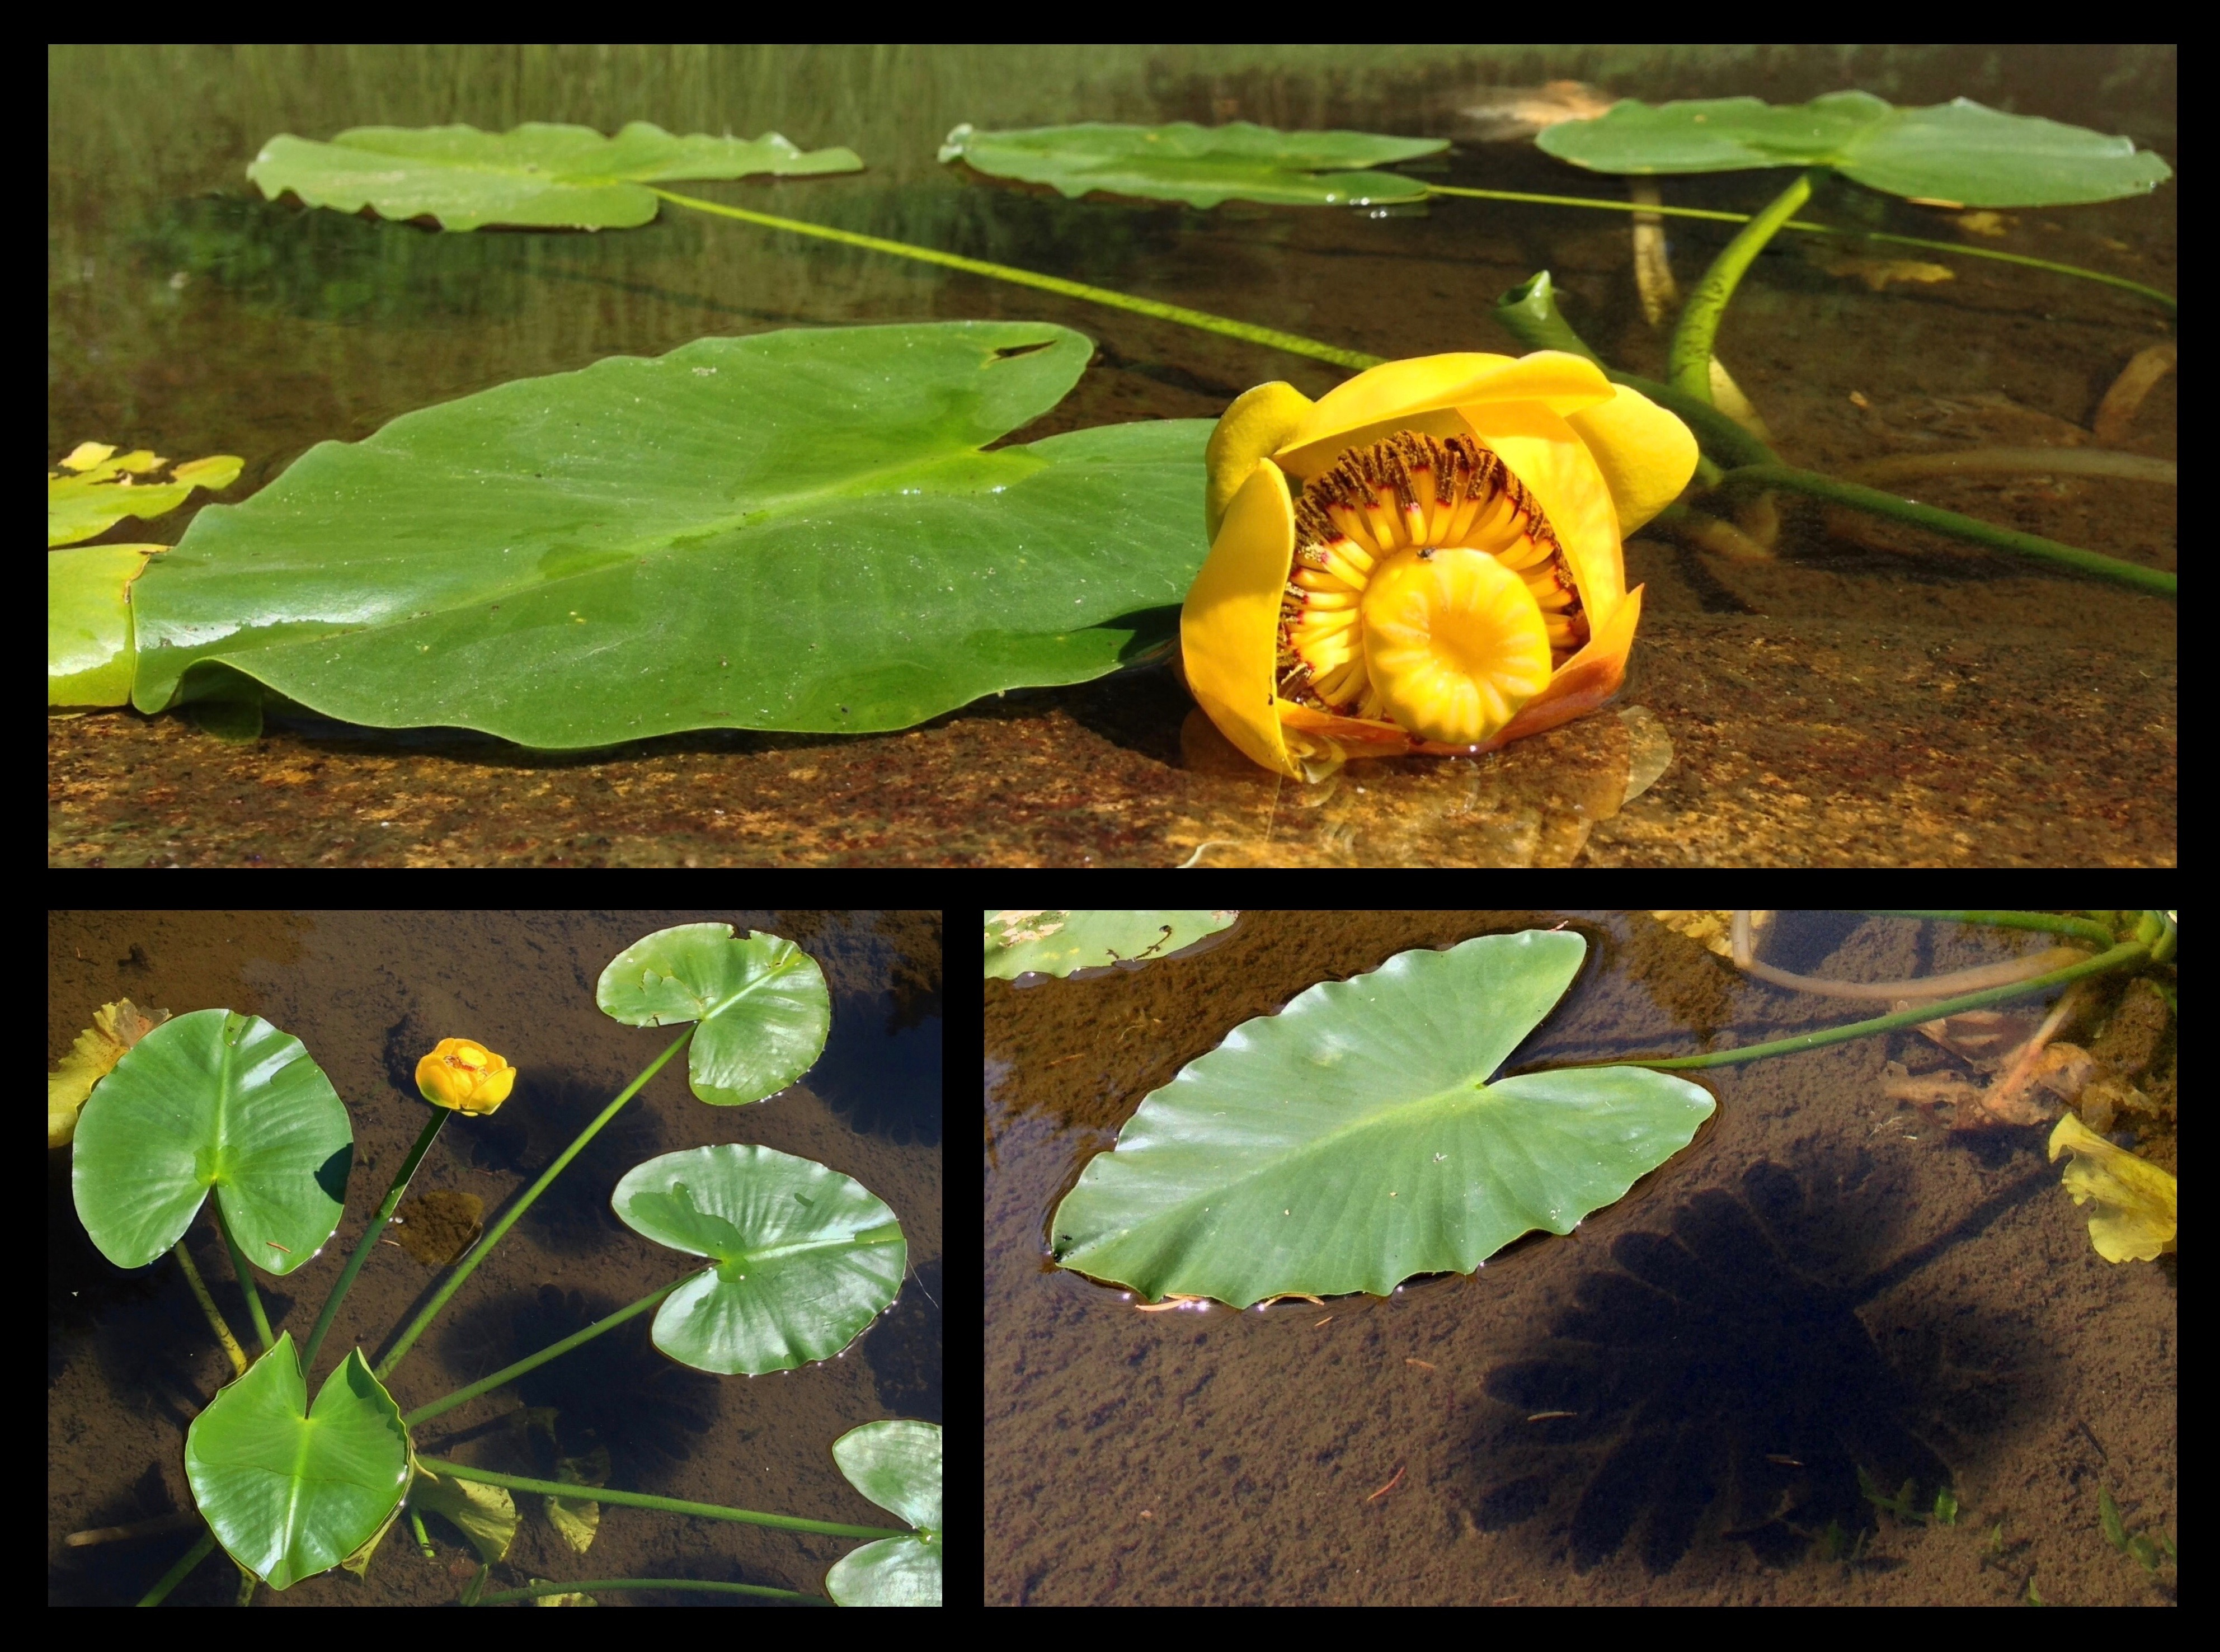 Spatterdock, or, yellow pond lilies (Nuphar polysepala) loft complex, squarish blooms above hovering leaves that cast X-ray-like shadows on the soft earth beneath the water's surface. Ira Spring Trail, August 10, 2014.